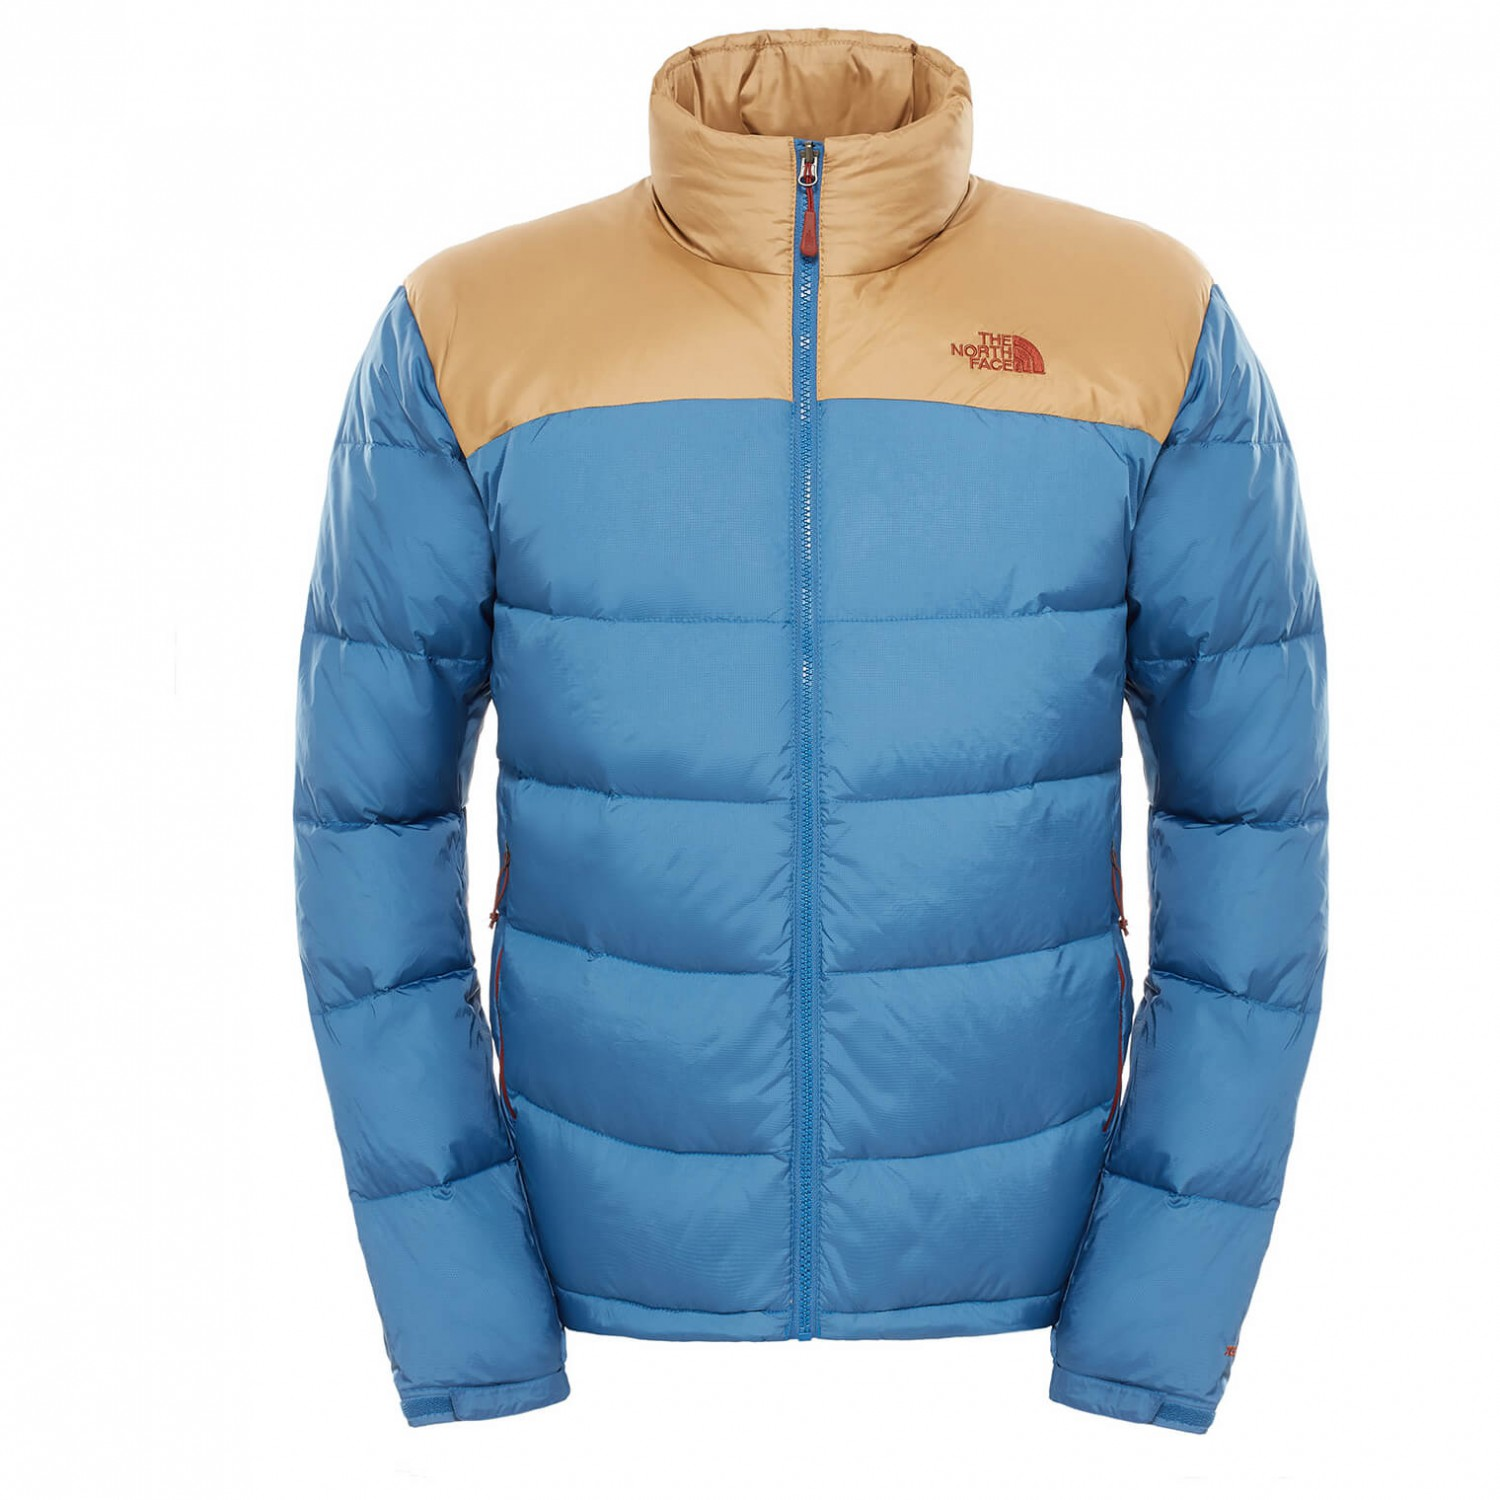 the north face nuptse 2 jacket down jacket men 39 s buy. Black Bedroom Furniture Sets. Home Design Ideas